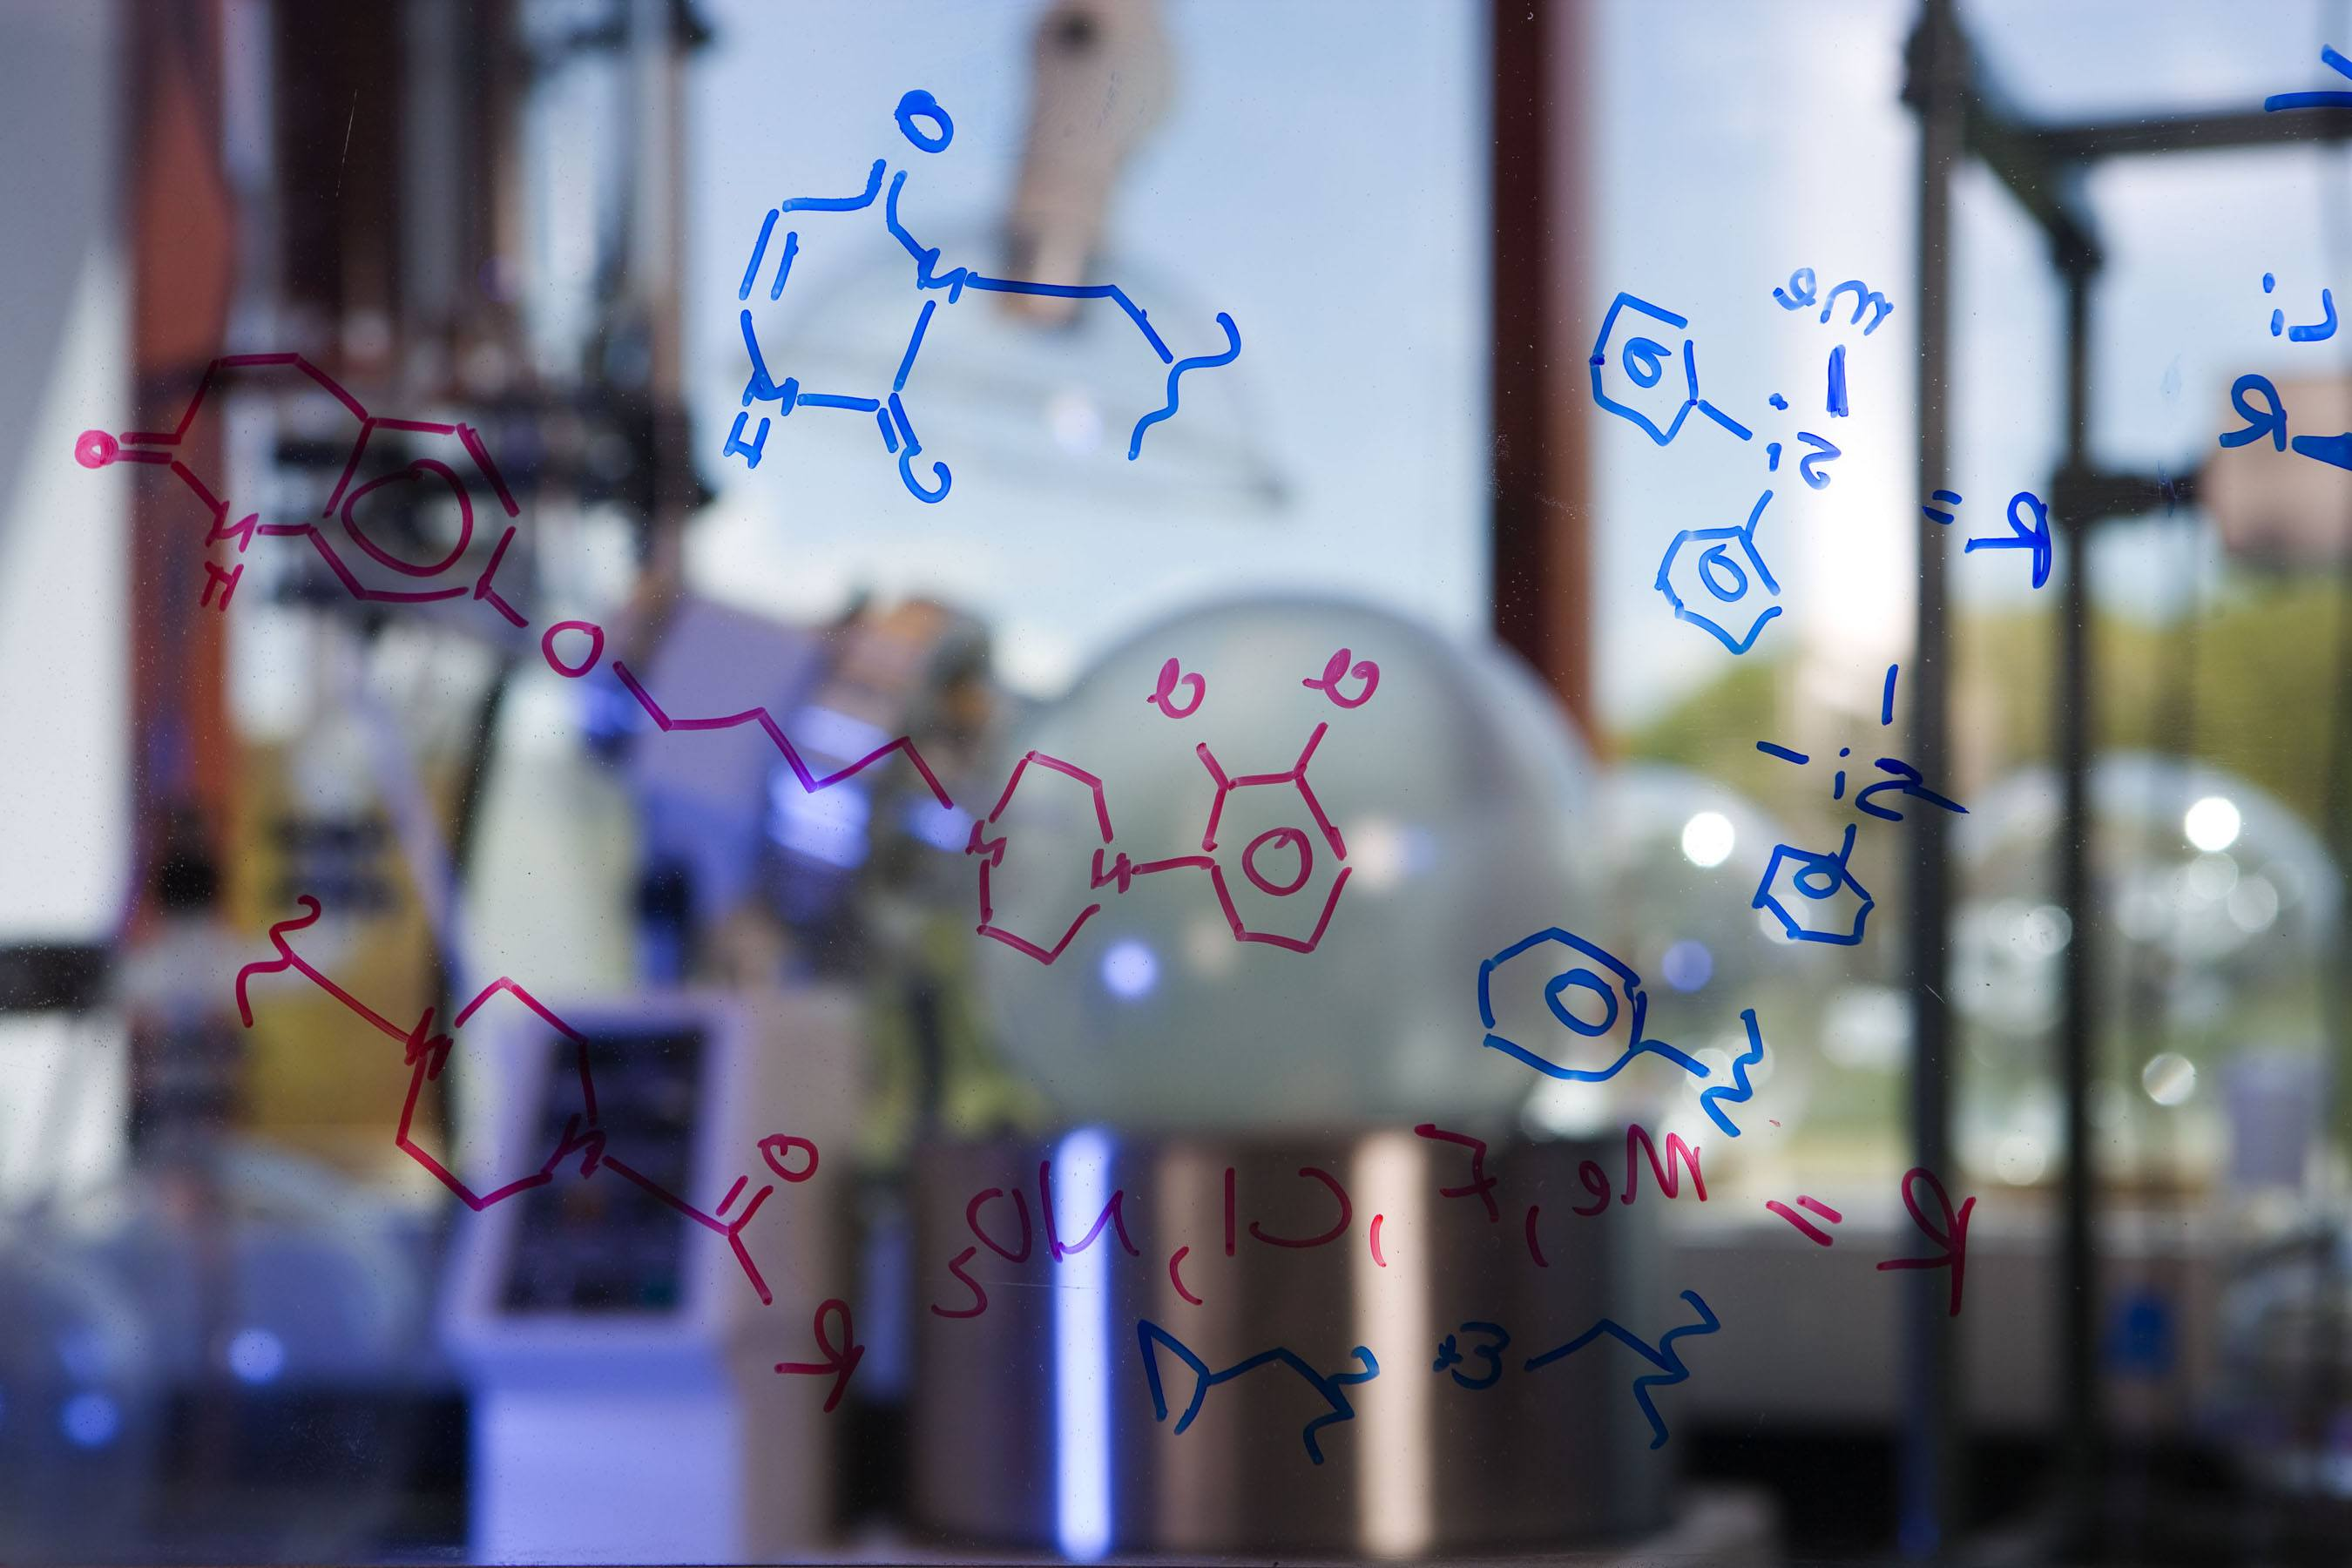 Chemical formulas written on glass